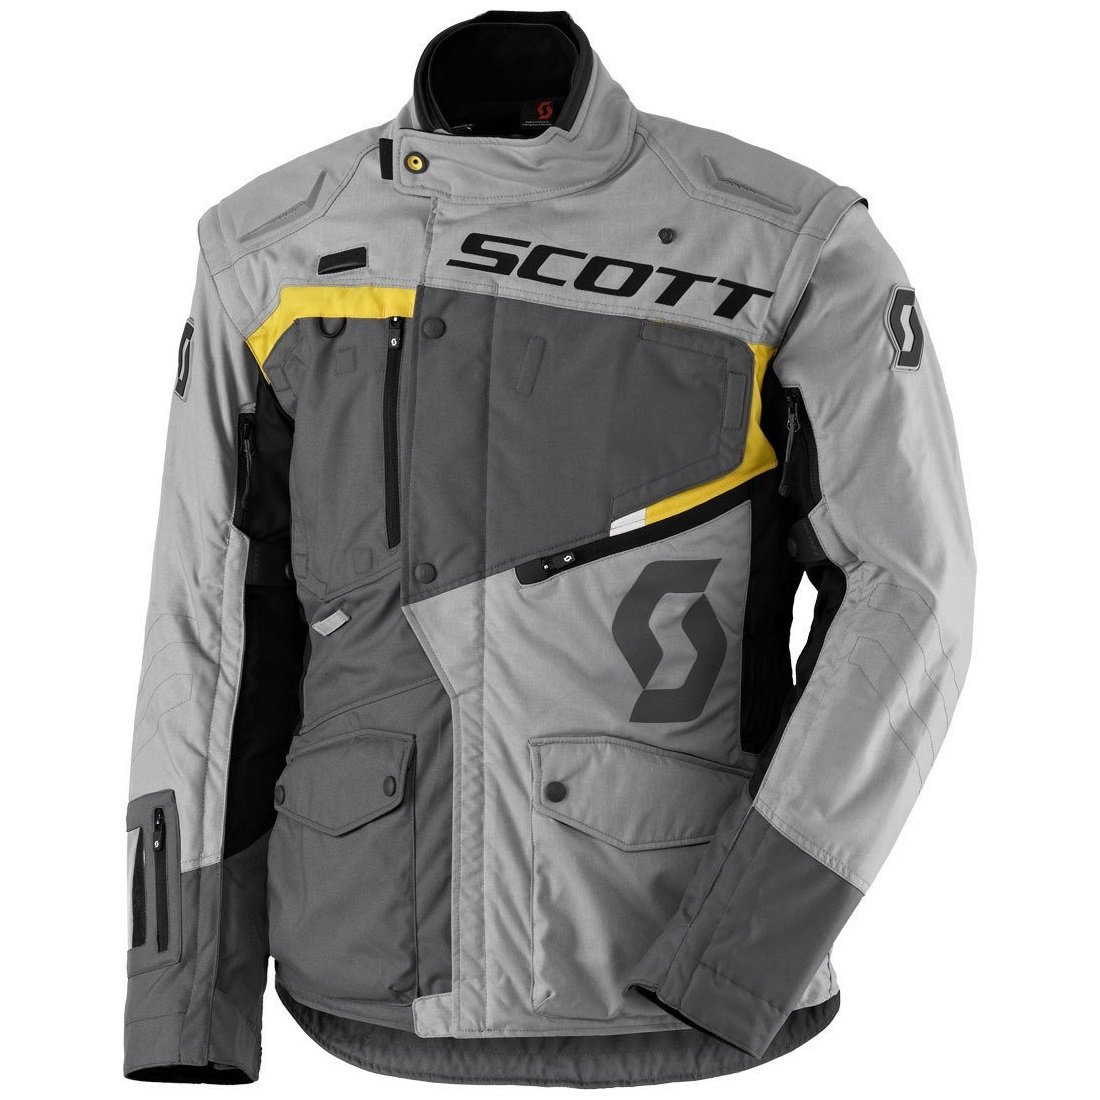 Scott Bunda Dualraid DP grey/yellow XL